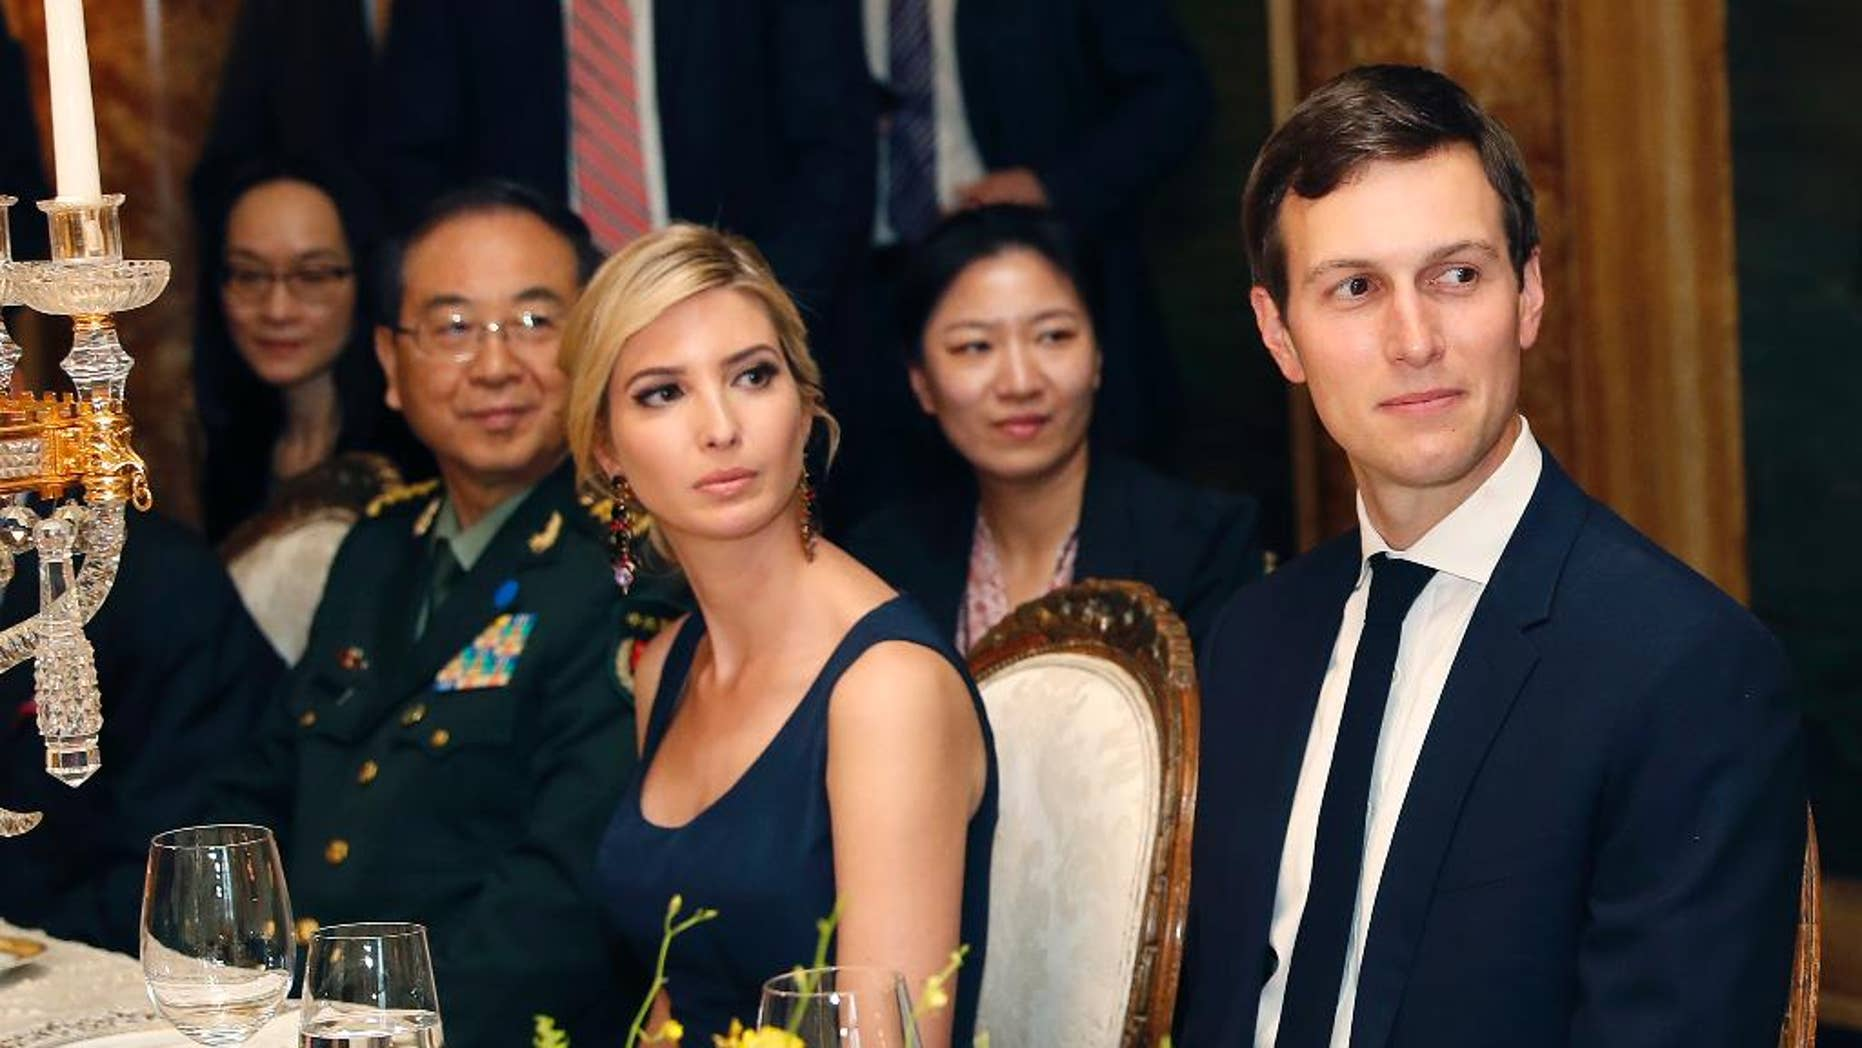 FILE - In this Thursday, April 6, 2017, file photo, Ivanka Trump, second from right, the daughter and assistant to President Donald Trump, is seated with her husband White House senior adviser Jared Kushner, right, during a dinner with President Donald Trump and Chinese President Xi Jinping, at Mar-a-Lago, in Palm Beach, Fla. China's Ministry of Foreign Affairs spokesman Lu Kang on Wednesday defended the handling of the applications of the trademarks won by U.S. President Donald Trump's daughter Ivanka and her company, saying that all such requests are handled fairly. (AP Photo/Alex Brandon, File)